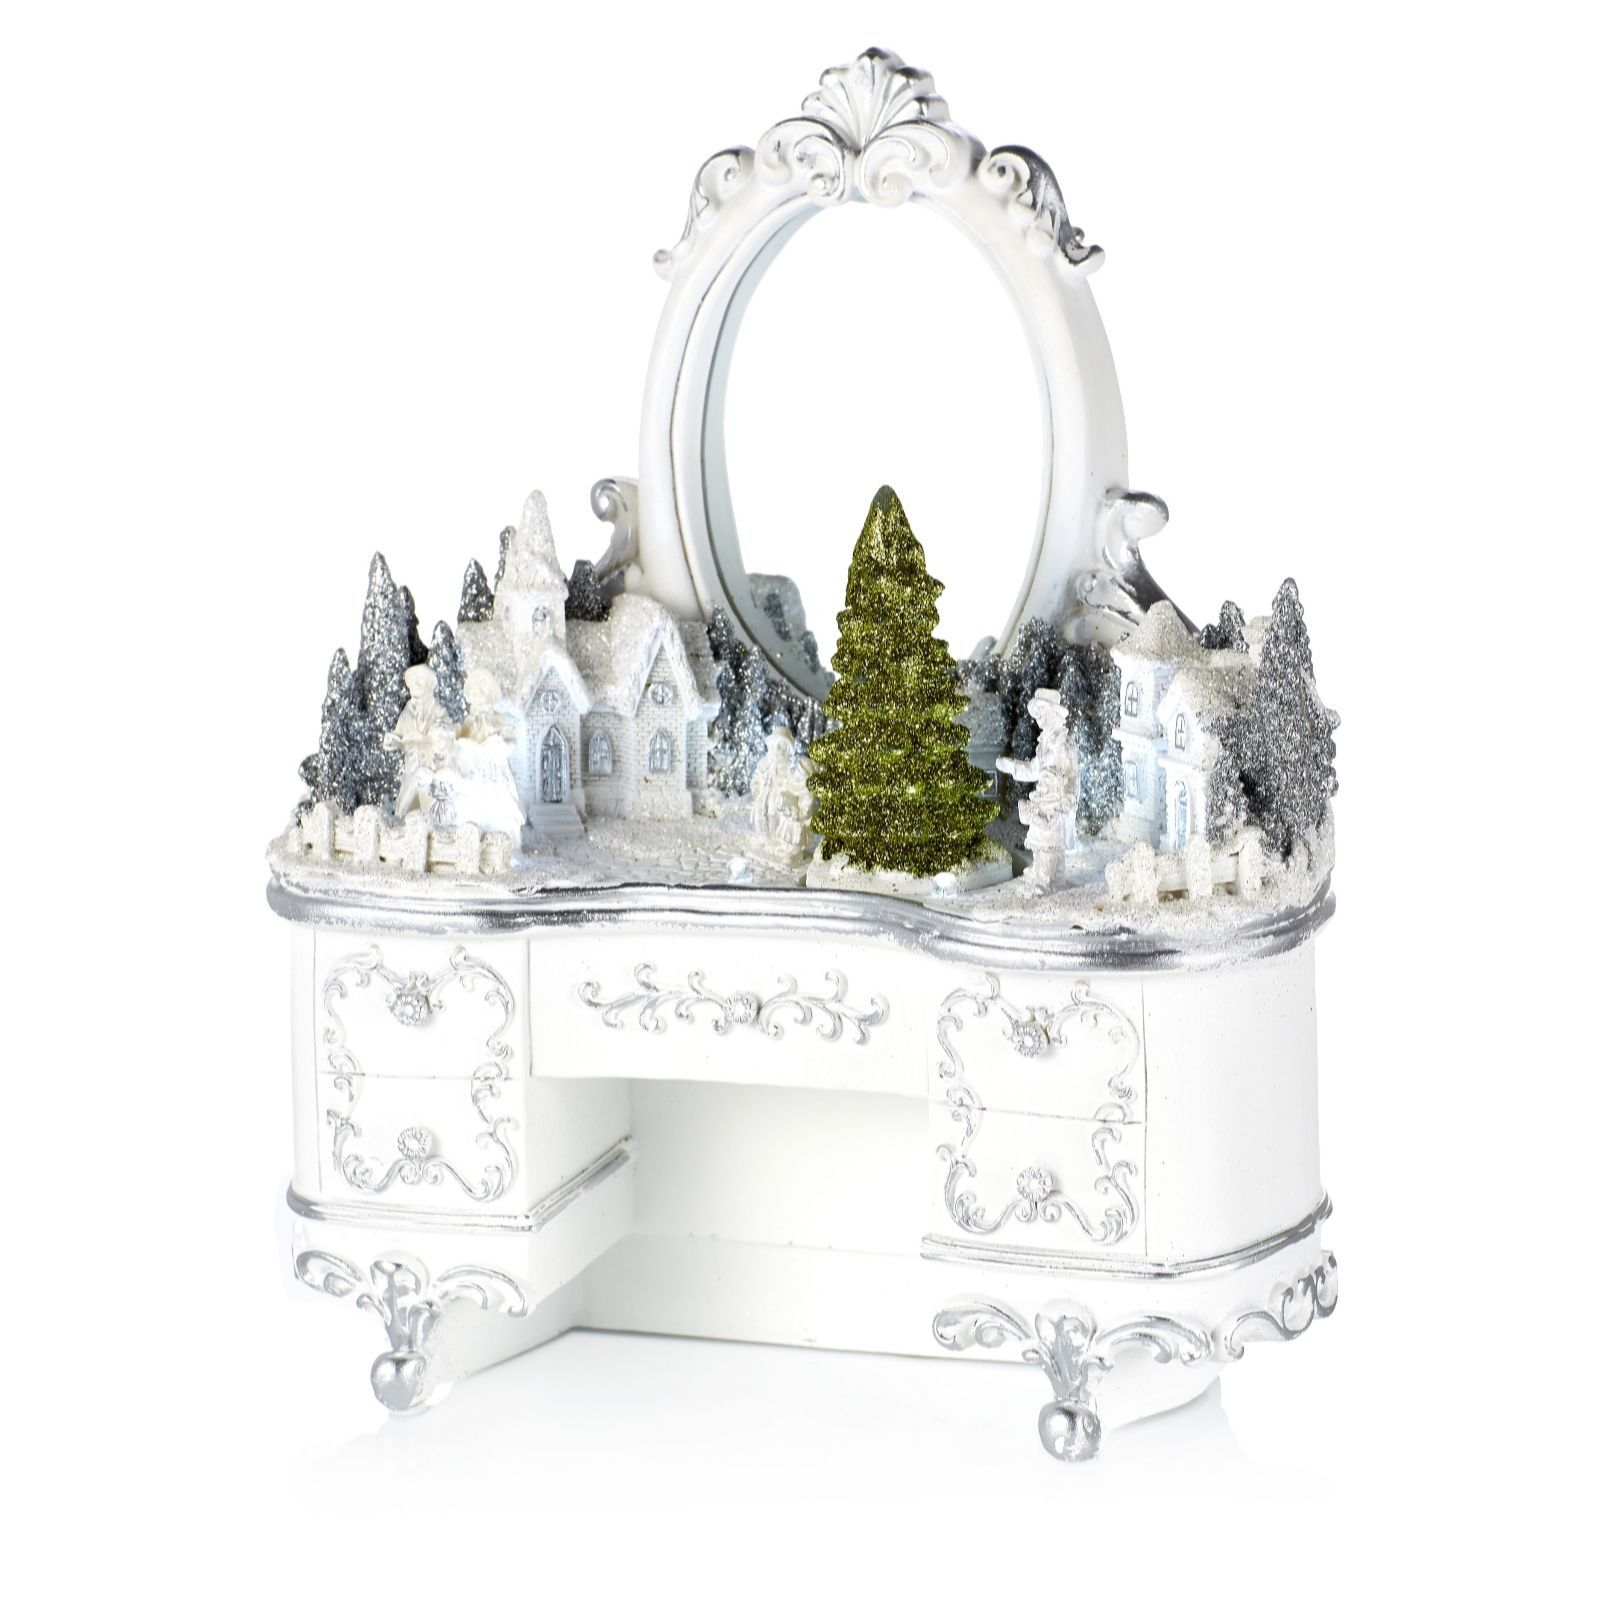 705758 - Home Reflections Winter Wonder Furniture Village with LED ...